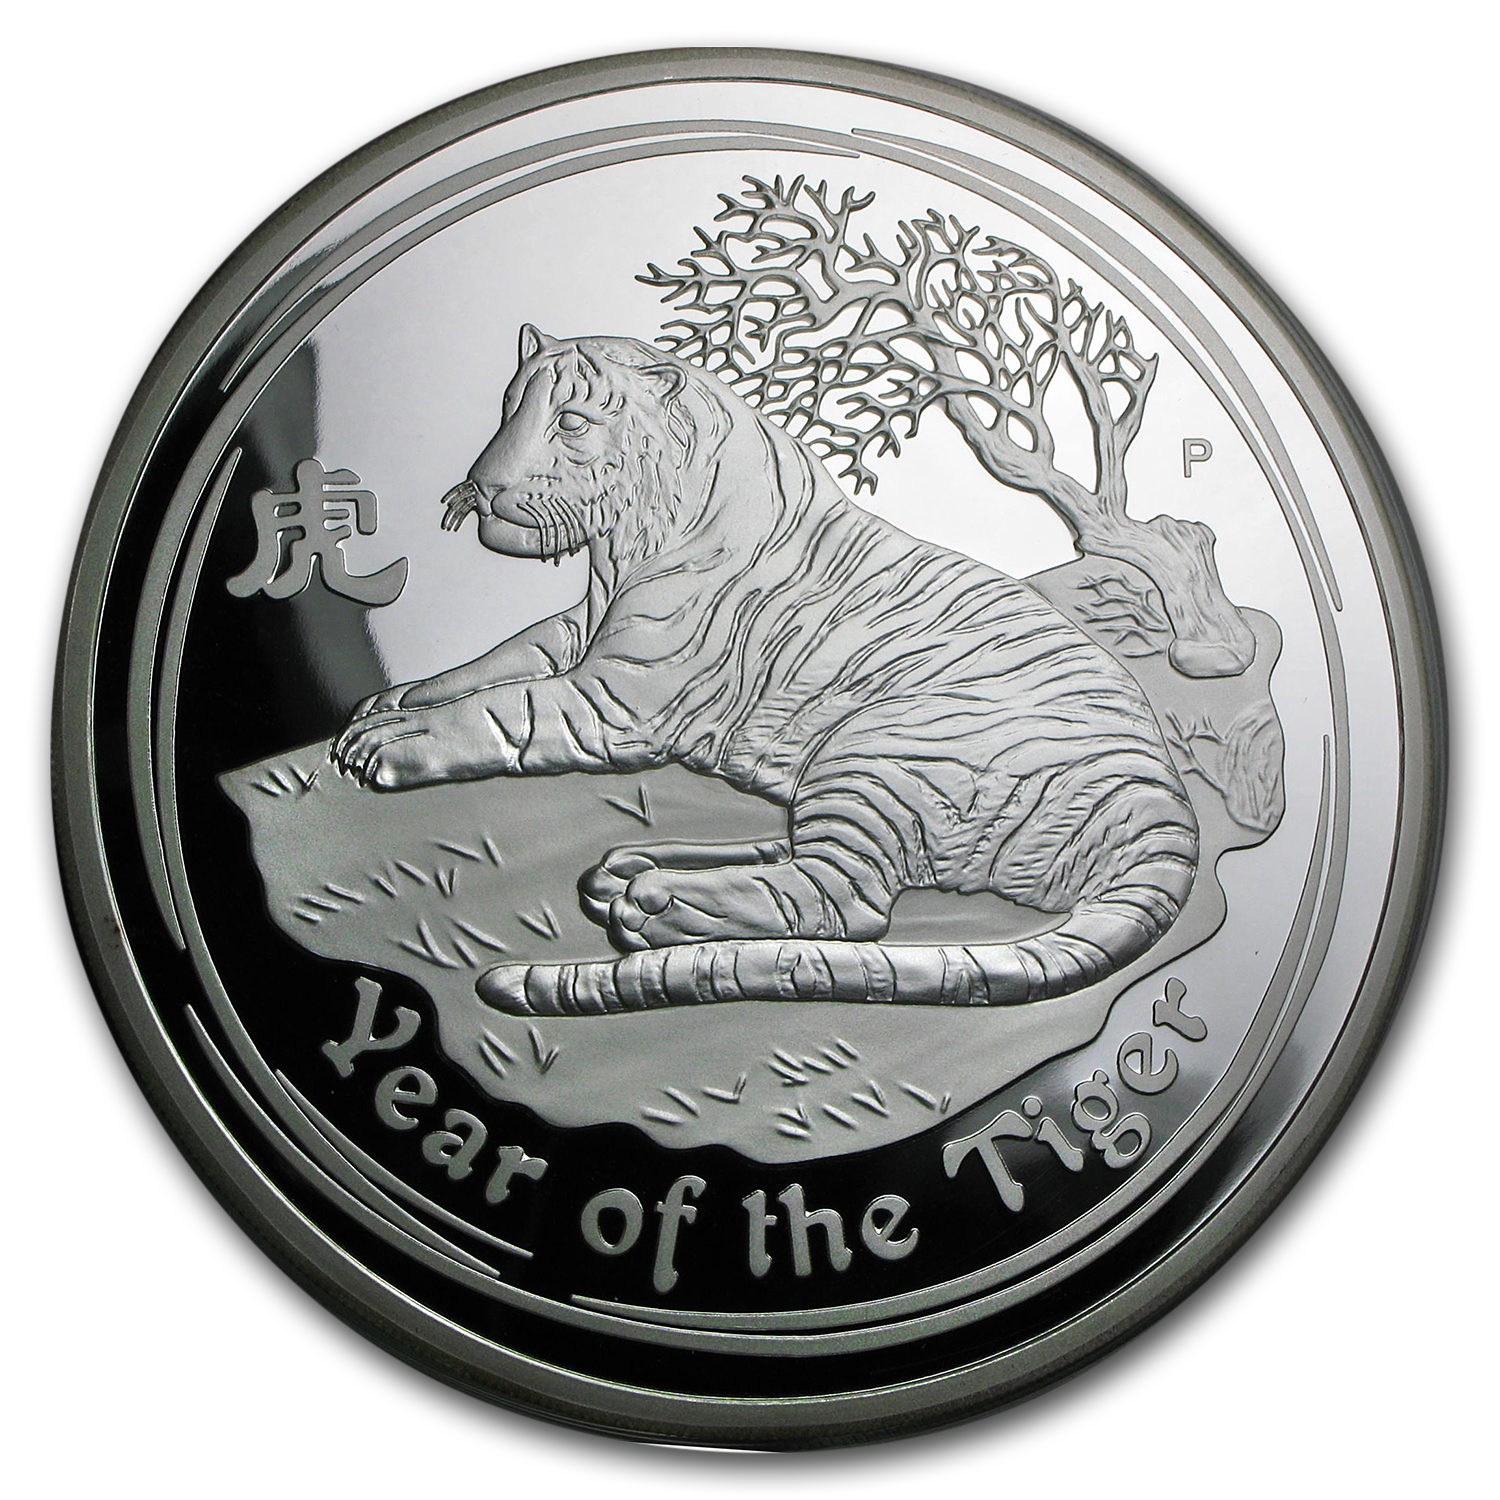 2010 Australia 1 kilo Silver Year of the Tiger Proof (DMG Box)